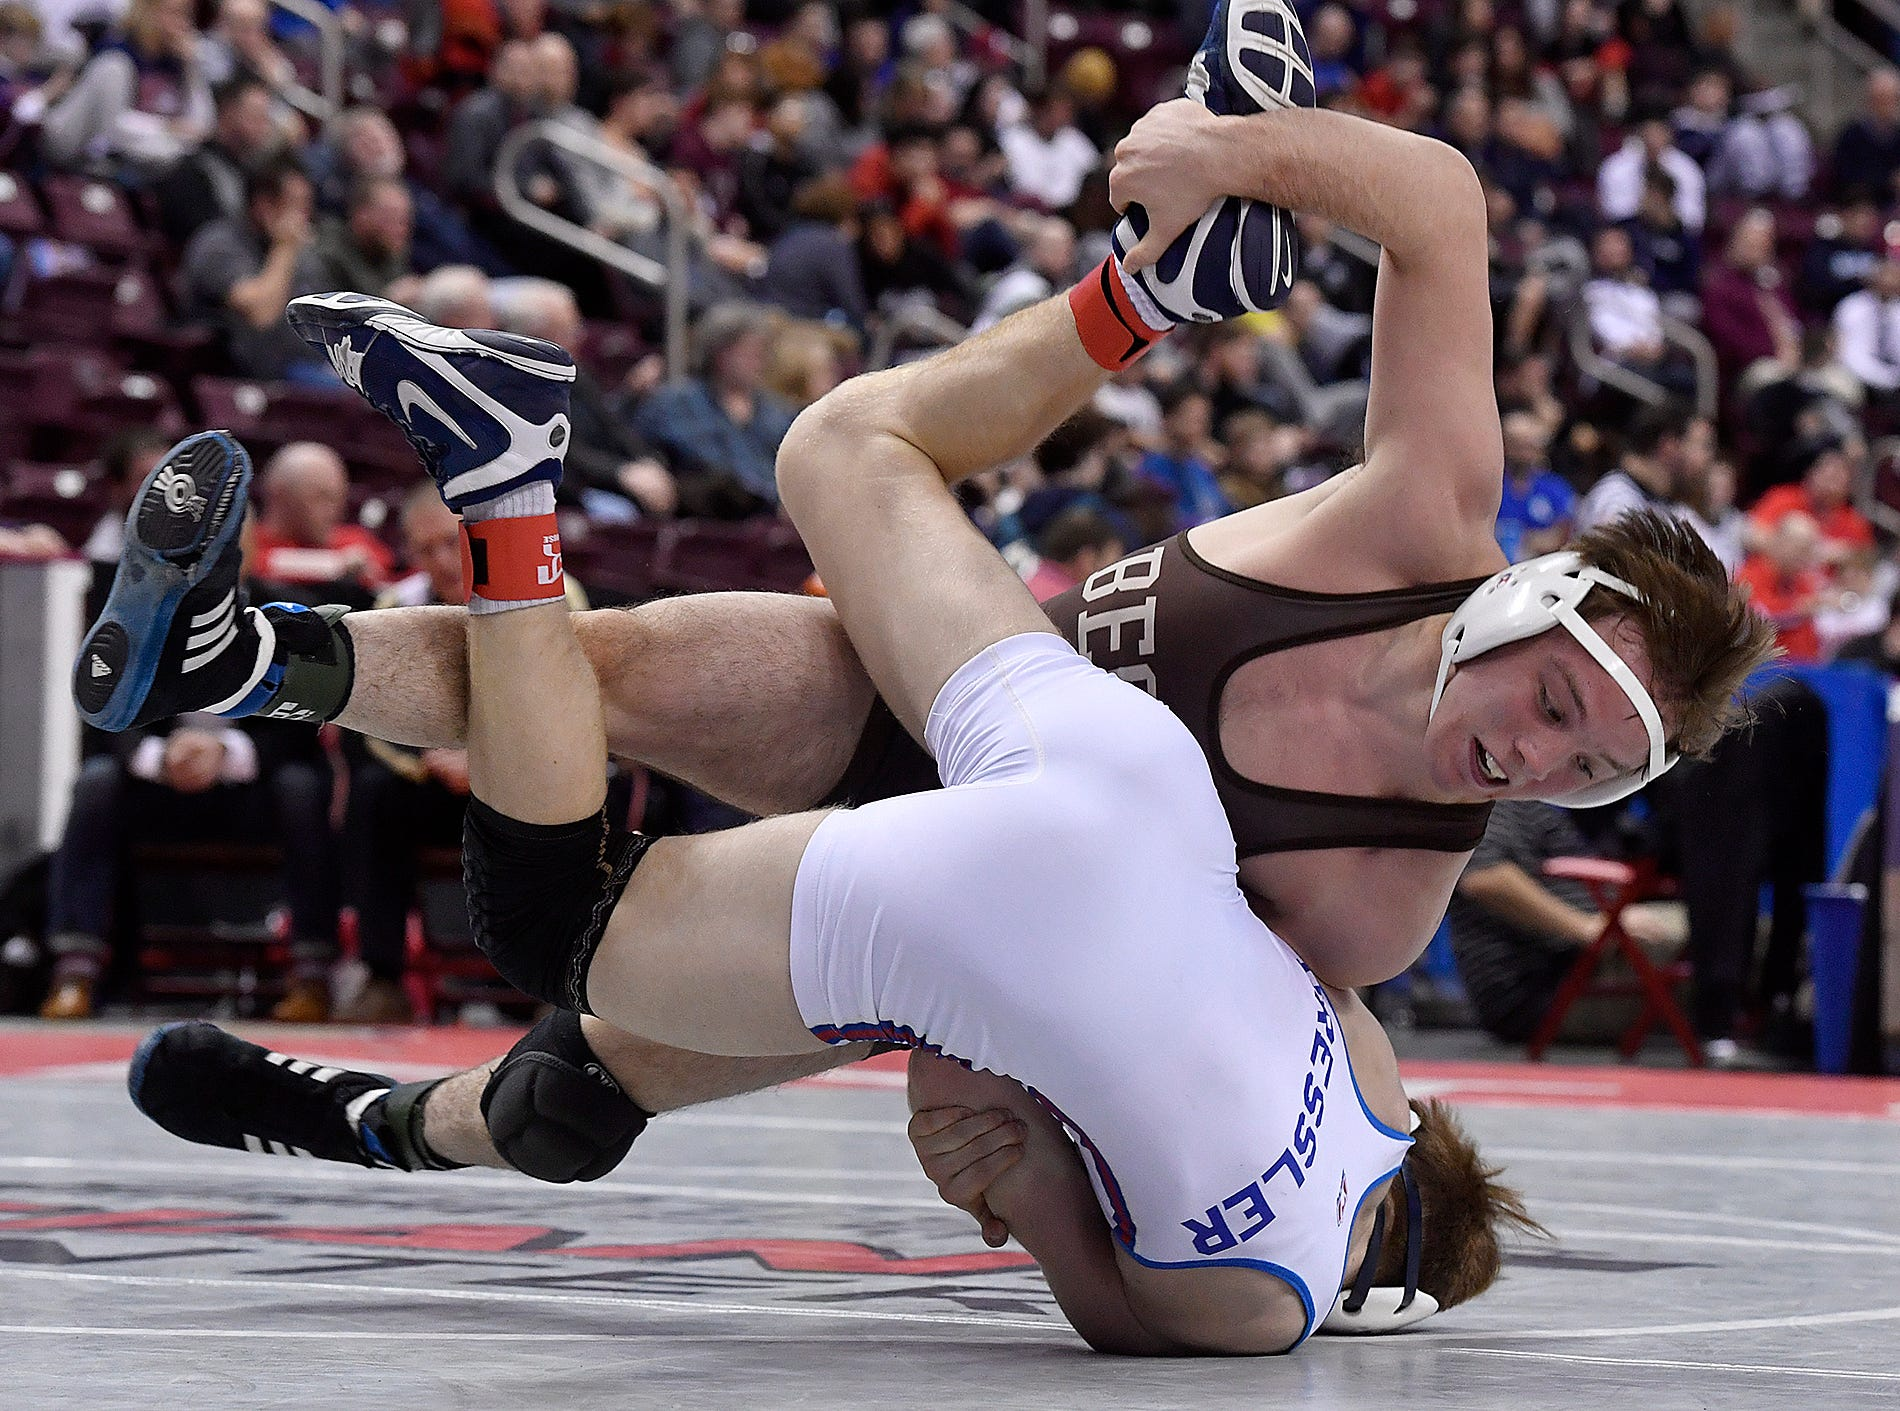 Ryan Anderson of Becahi takes down Thomas Dressler of Spring Grove during the PIAA Class 3-A 145 pound first round match, Thursday, March 7, 2019.John A. Pavoncello photo